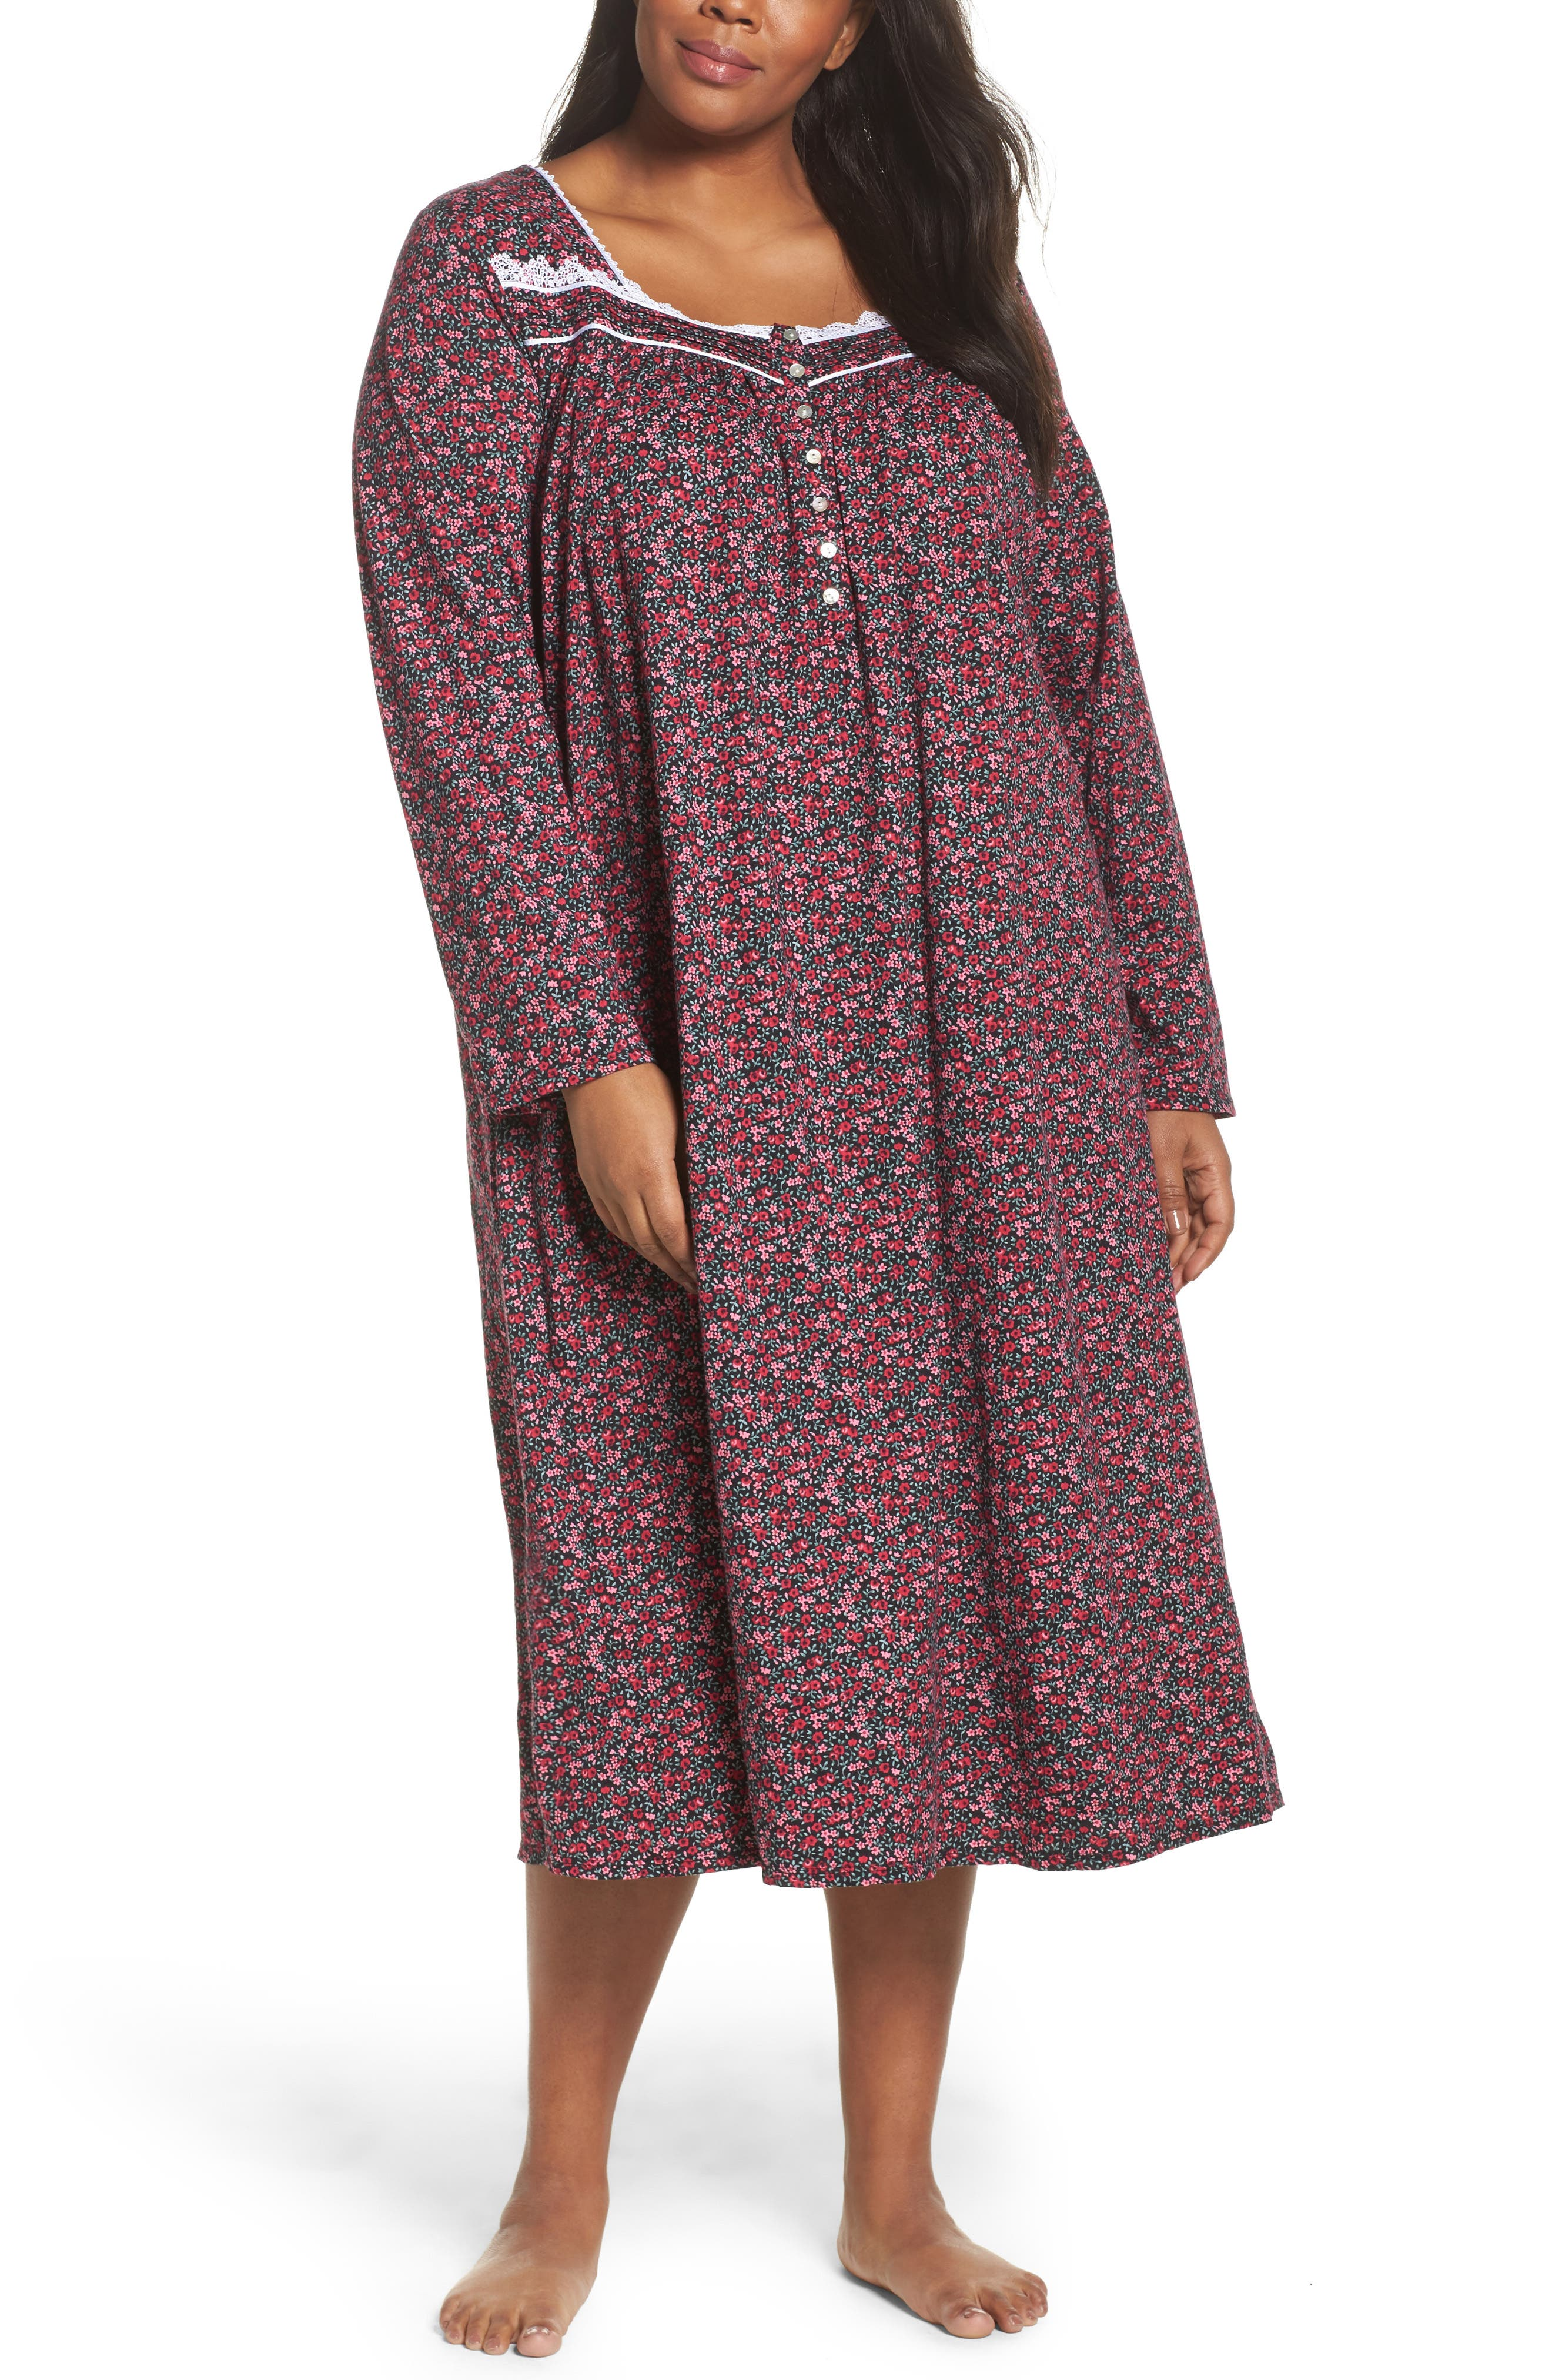 Alternate Image 1 Selected - Eileen West Cotton Nightgown (Plus Size)